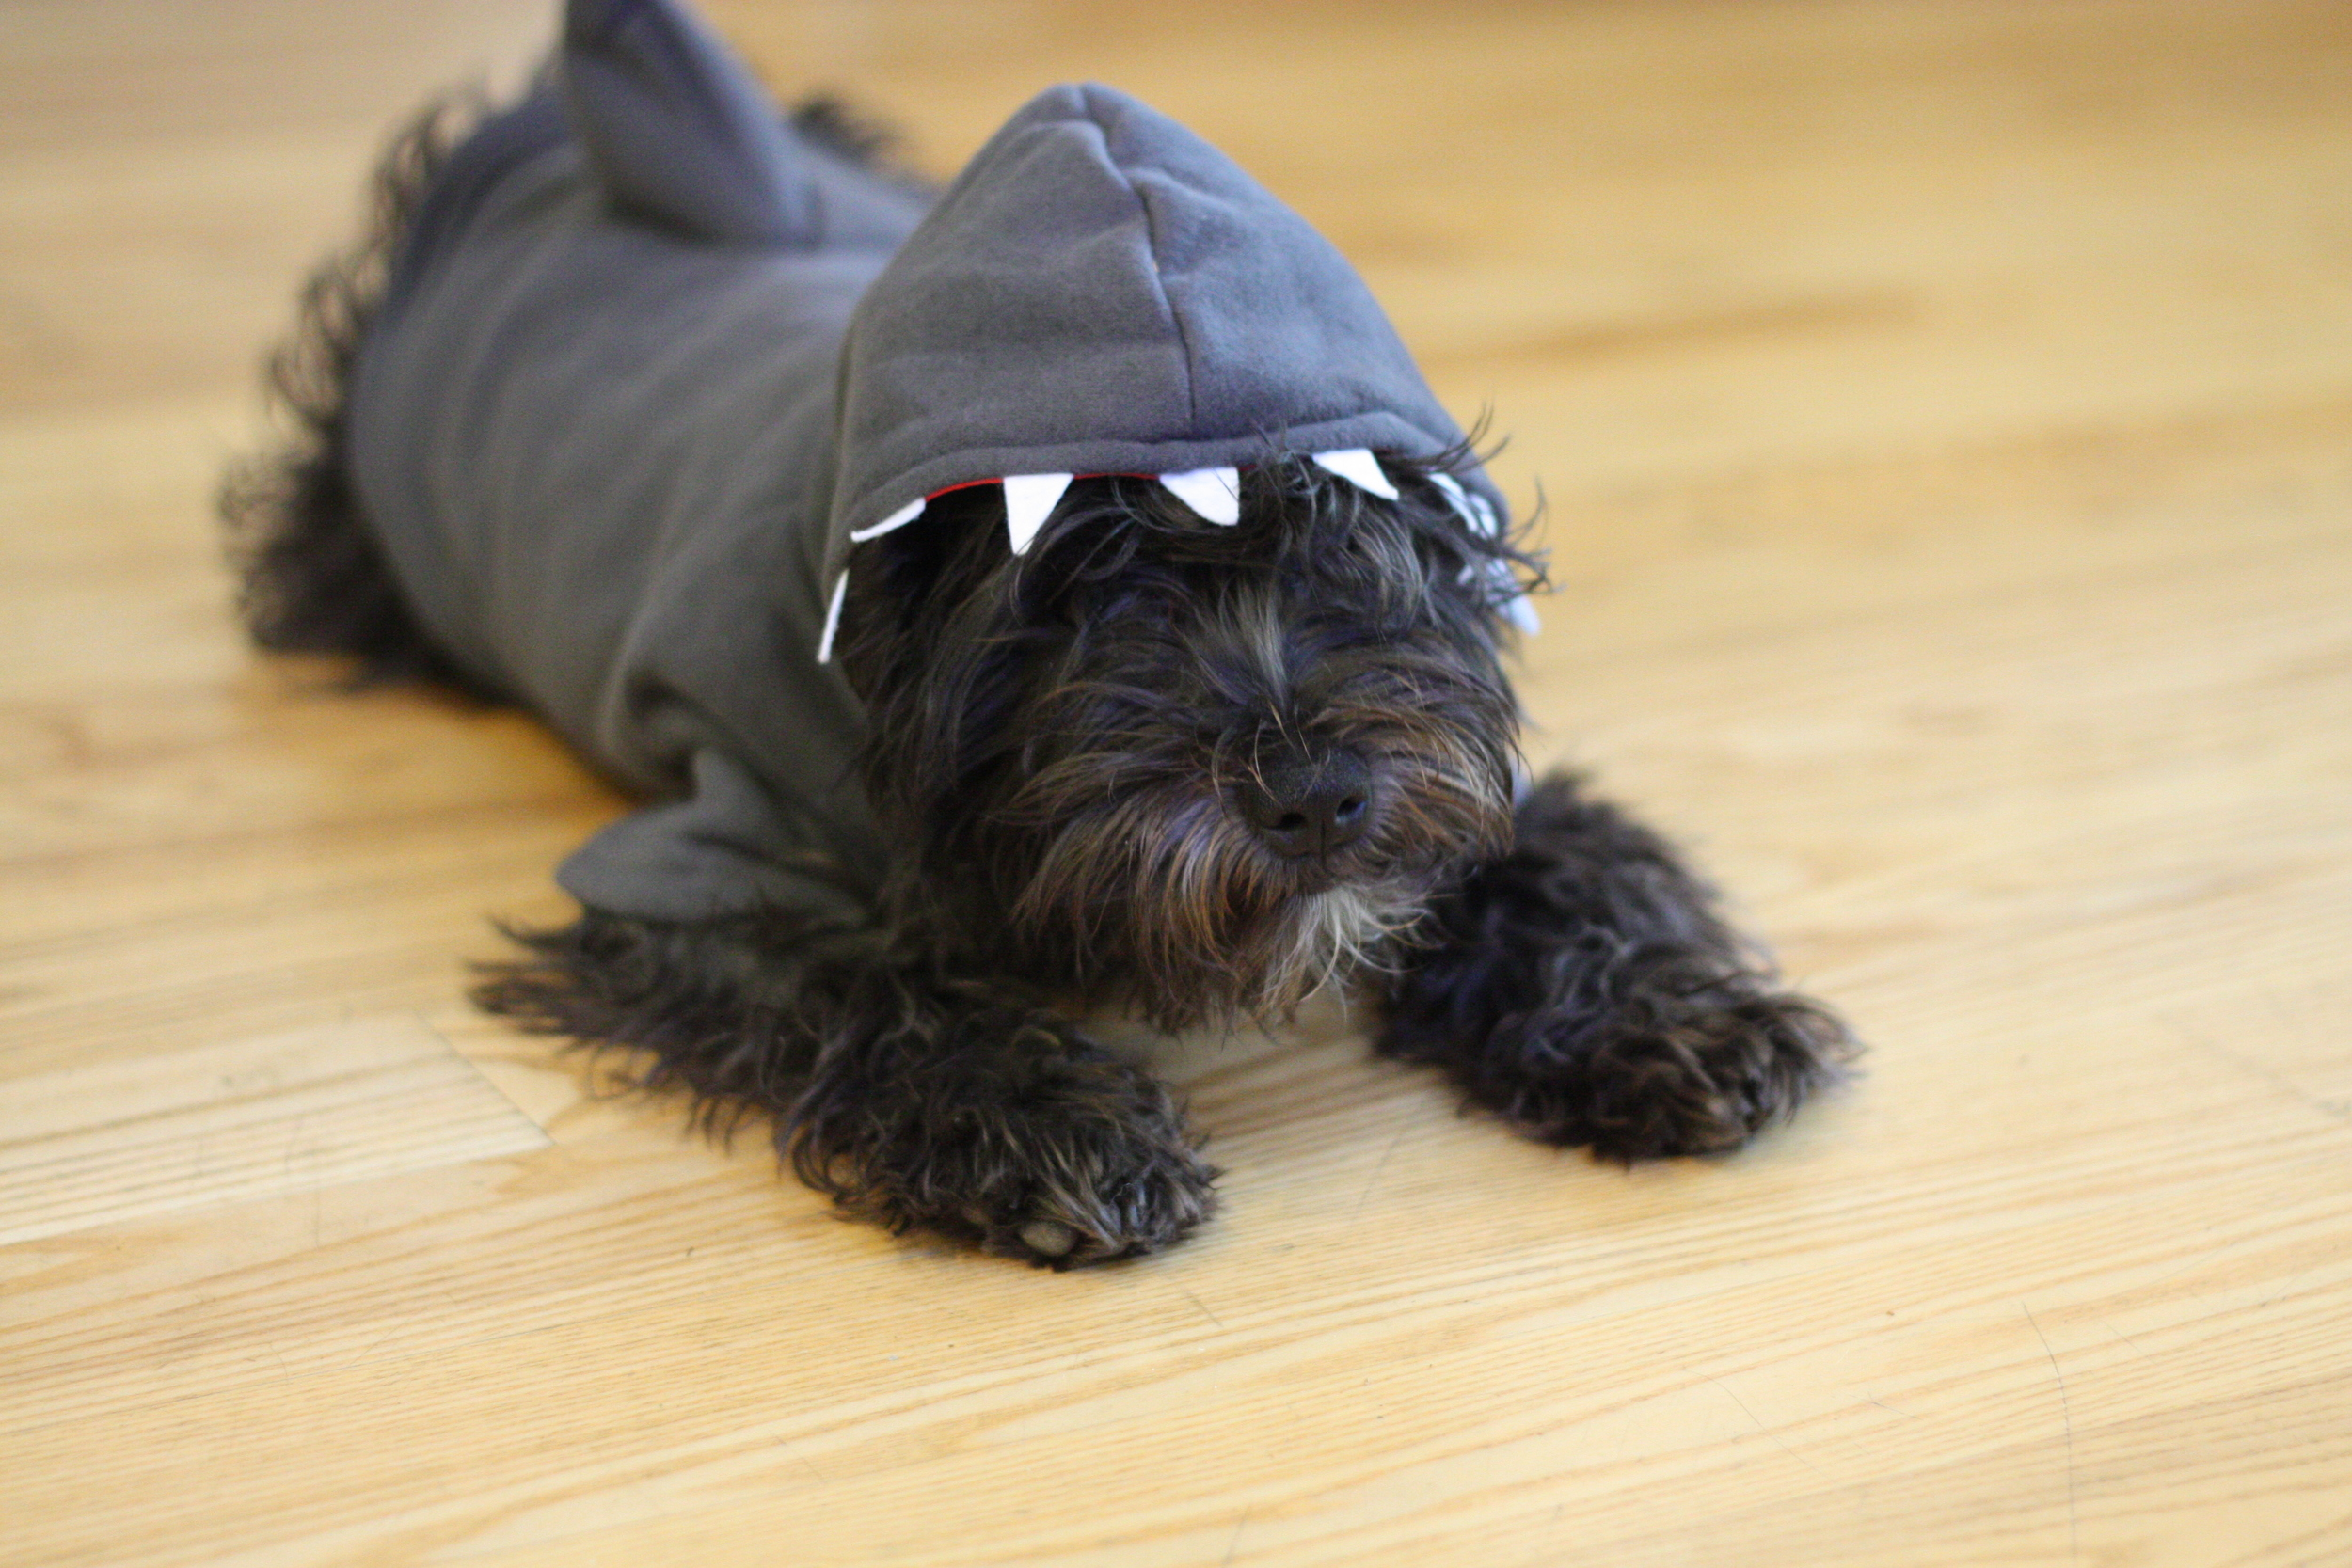 Although she makes an adorable schnauzer shark, Zelda despises this shark sweater and alternates between freezing like a statue and flopping around like a fish when she has it on.